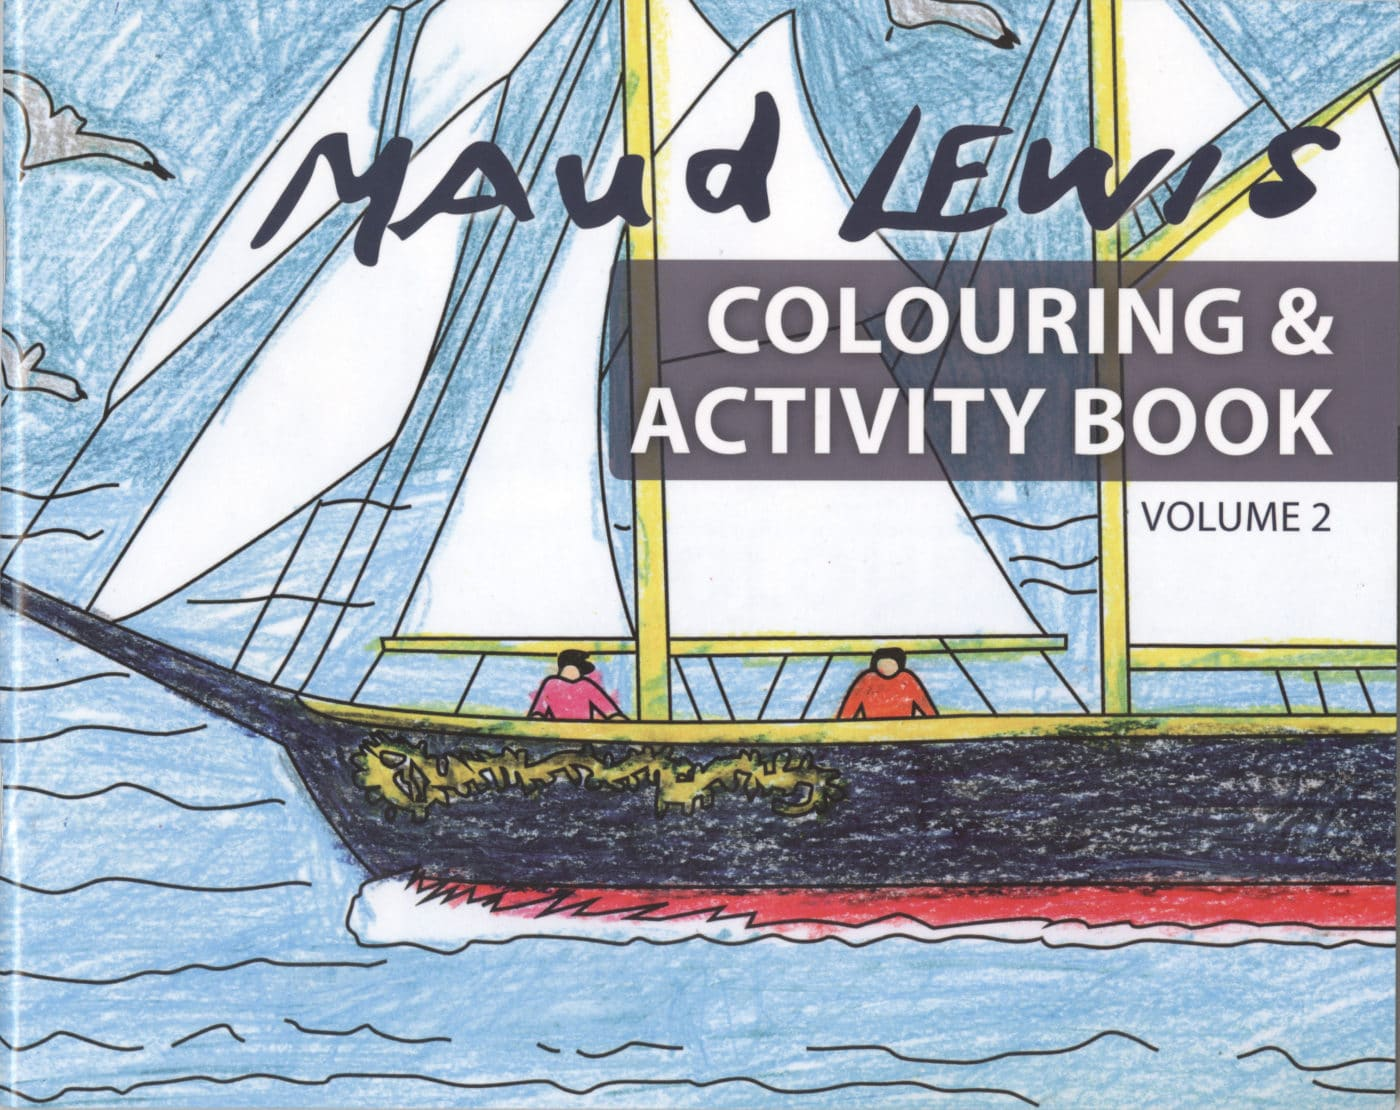 Maud Lewis Colouring & Activity Book Volume 2